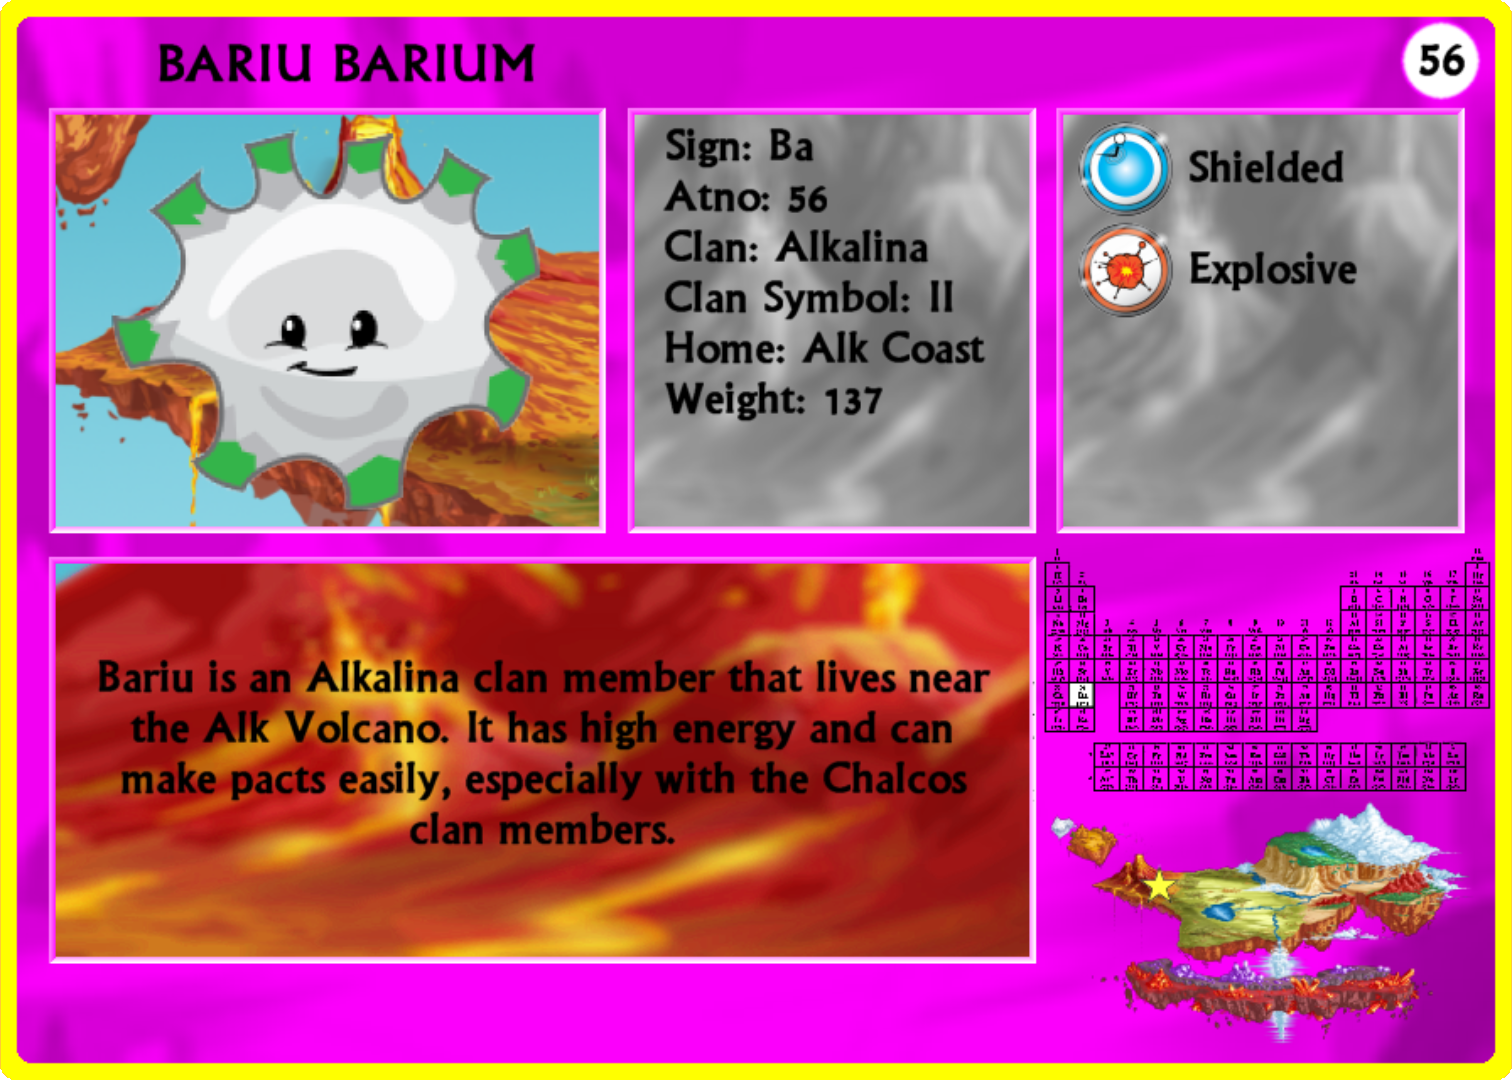 Bariu Barium is a member of the Alkalina clan with an atno of 56. Bariu is not very strong but has explosive powers especially with water and Oxyn. Bariu is poisonous and is rarely seen unless it is teamed up with other Perios.